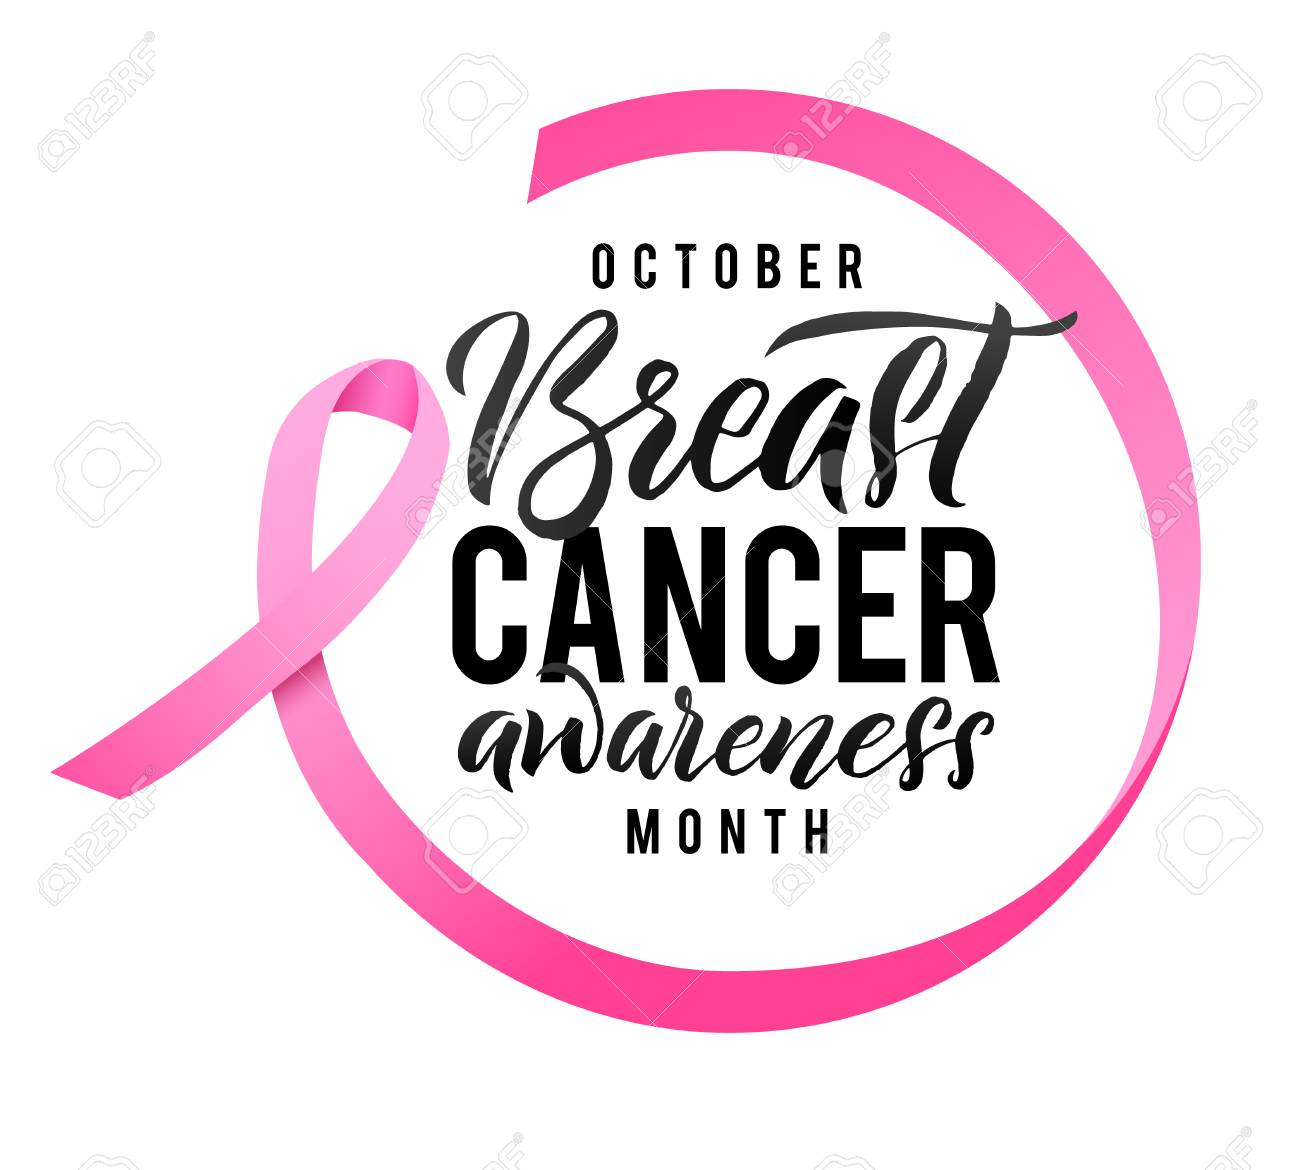 Breast Cancer Awareness Calligraphy Poster Design. Ribbon around letters. Vector Stroke Pink Ribbon. October is Cancer Awareness Month. - 86057150